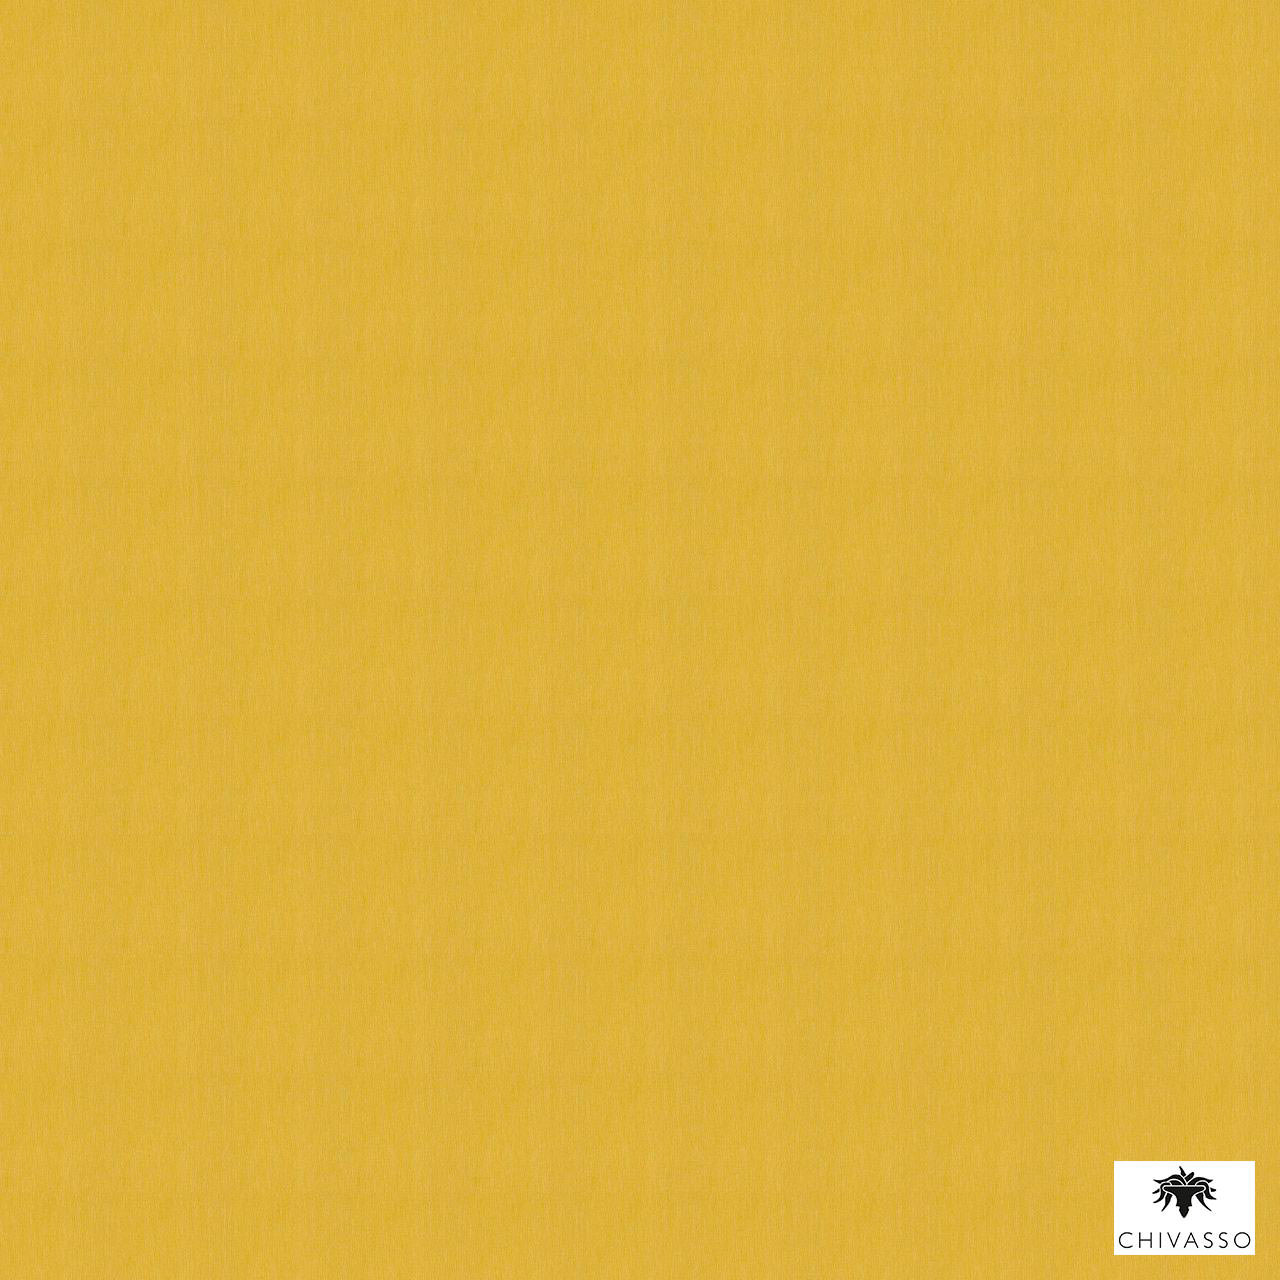 Chivasso - Colour Block - Ch9112-041  | Wallpaper, Wallcovering - Gold,  Yellow, Plain, Domestic Use